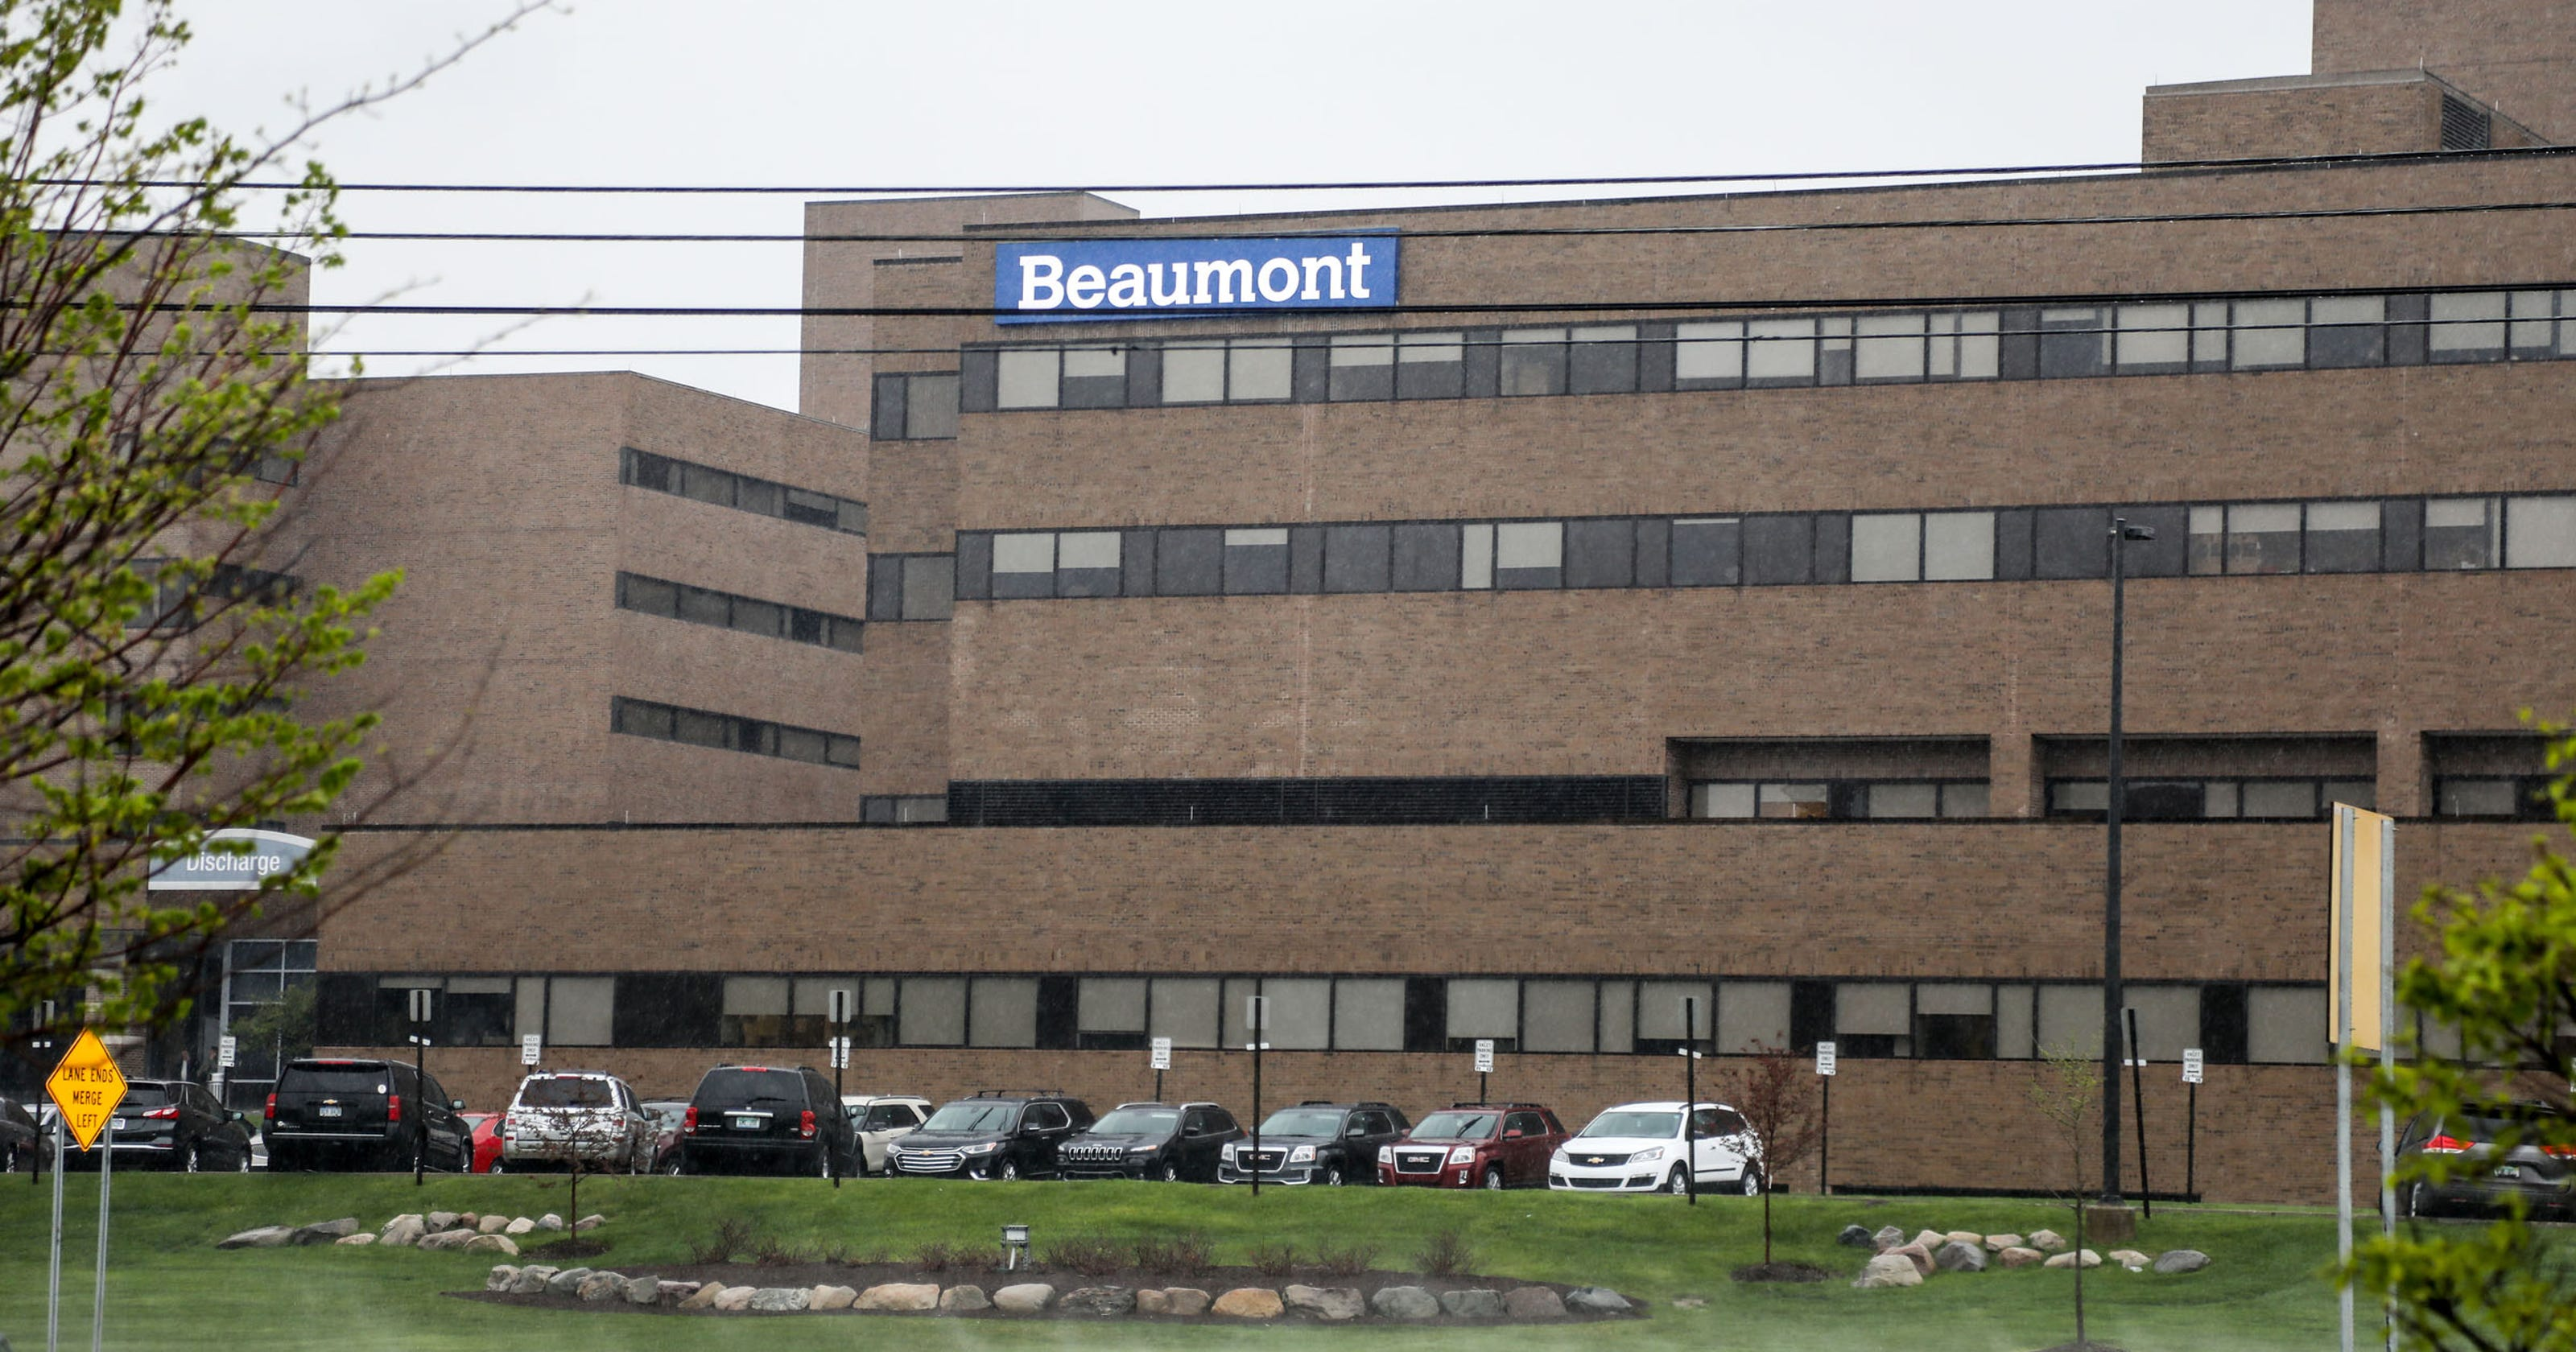 Person in custody after lockdown at Beaumont Troy